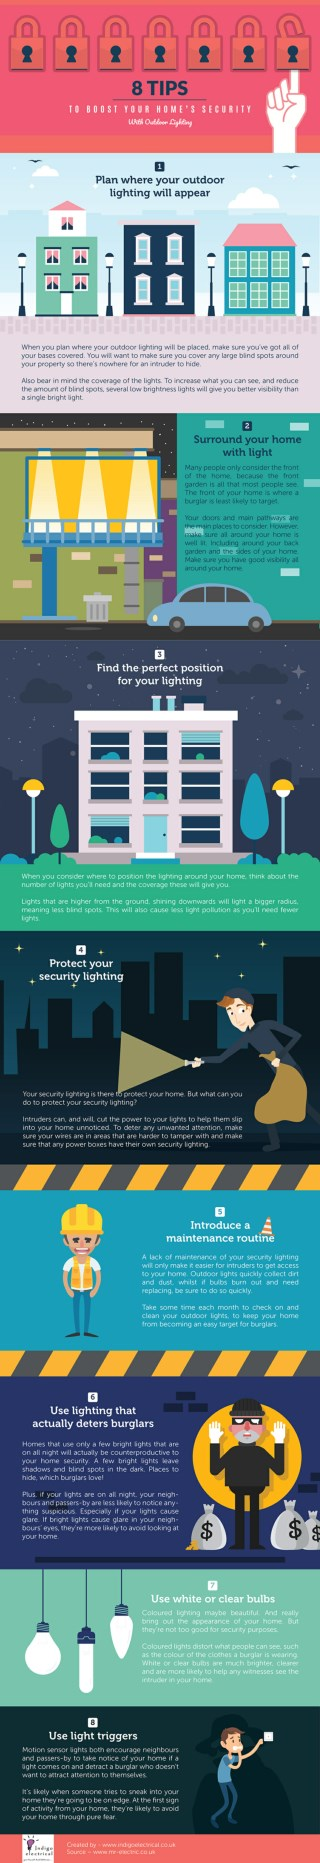 8 Tips to Boost Your Home's Security With Outdoor Lighting